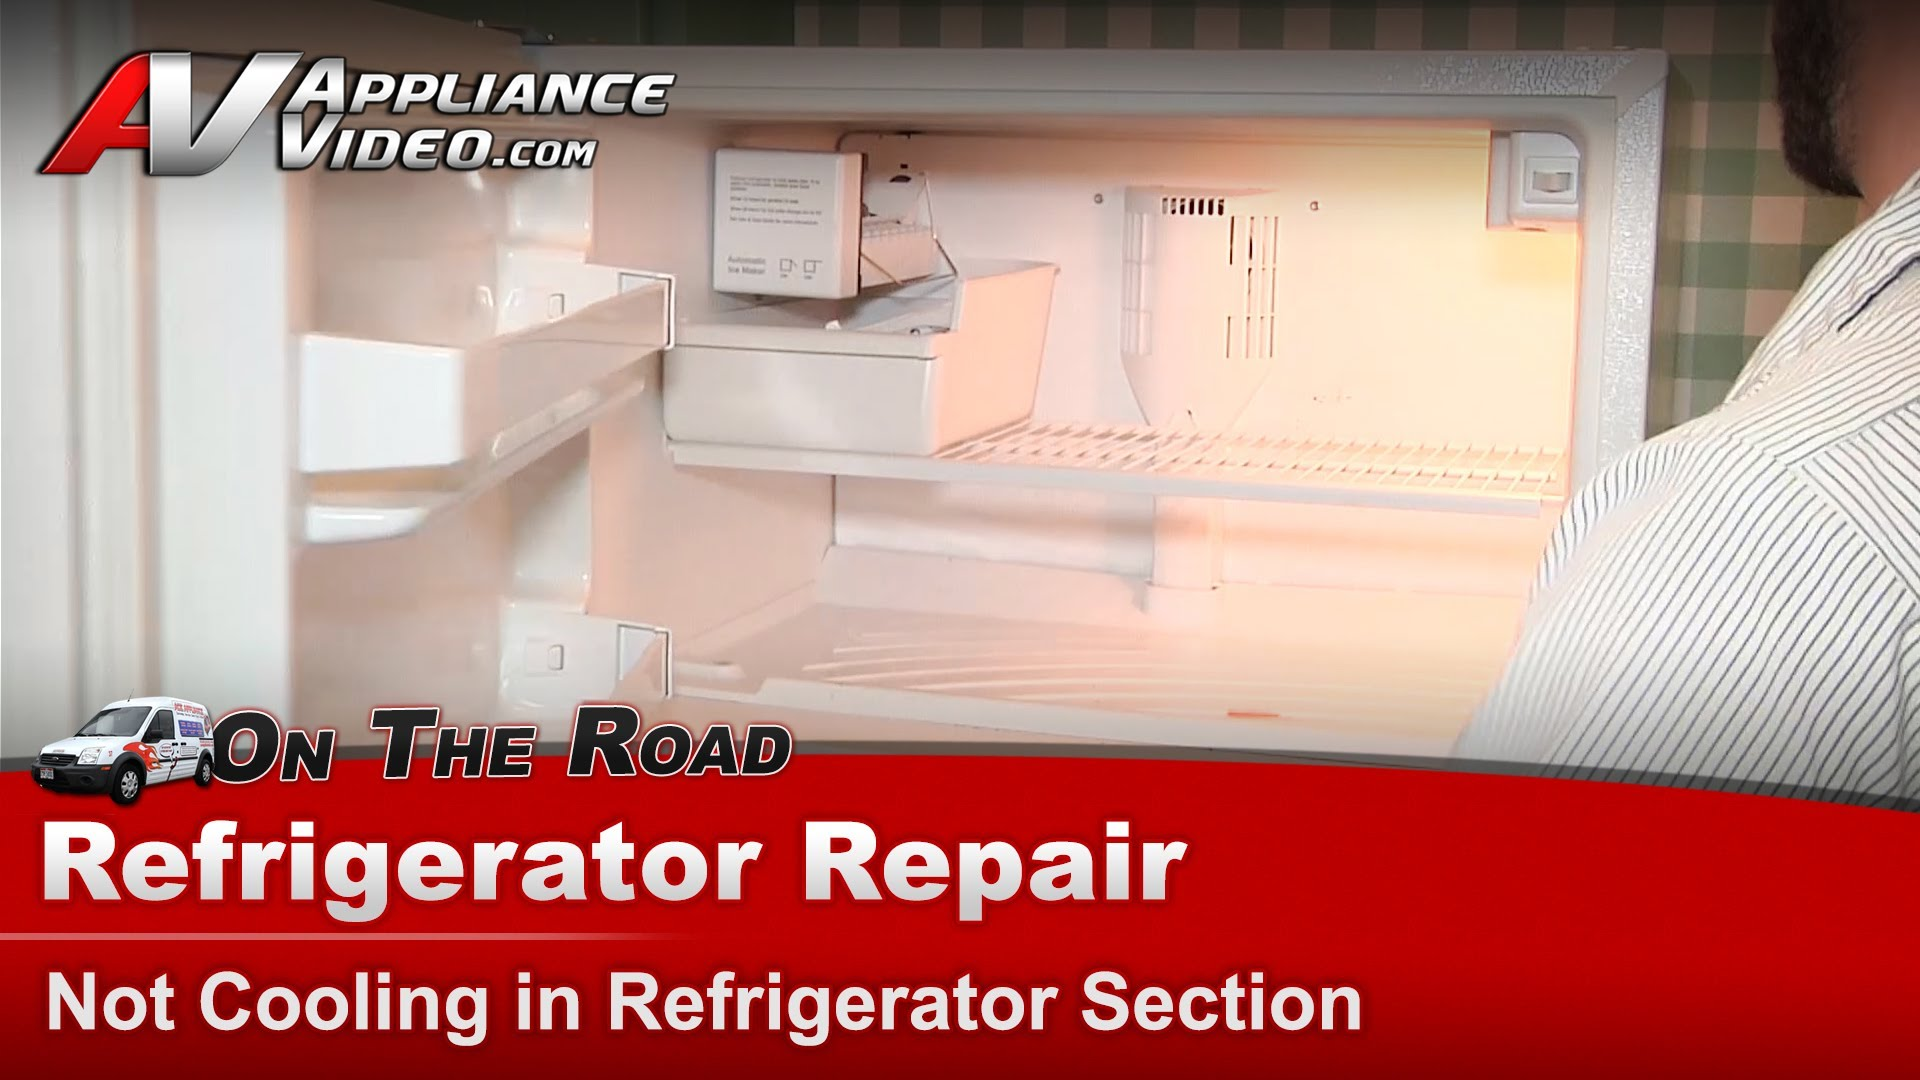 Kenmore Refrigerator Repair >> Kenmore 10671192101 Refrigerator Repair – Not cooling in the refrigerator section – Evaporator ...